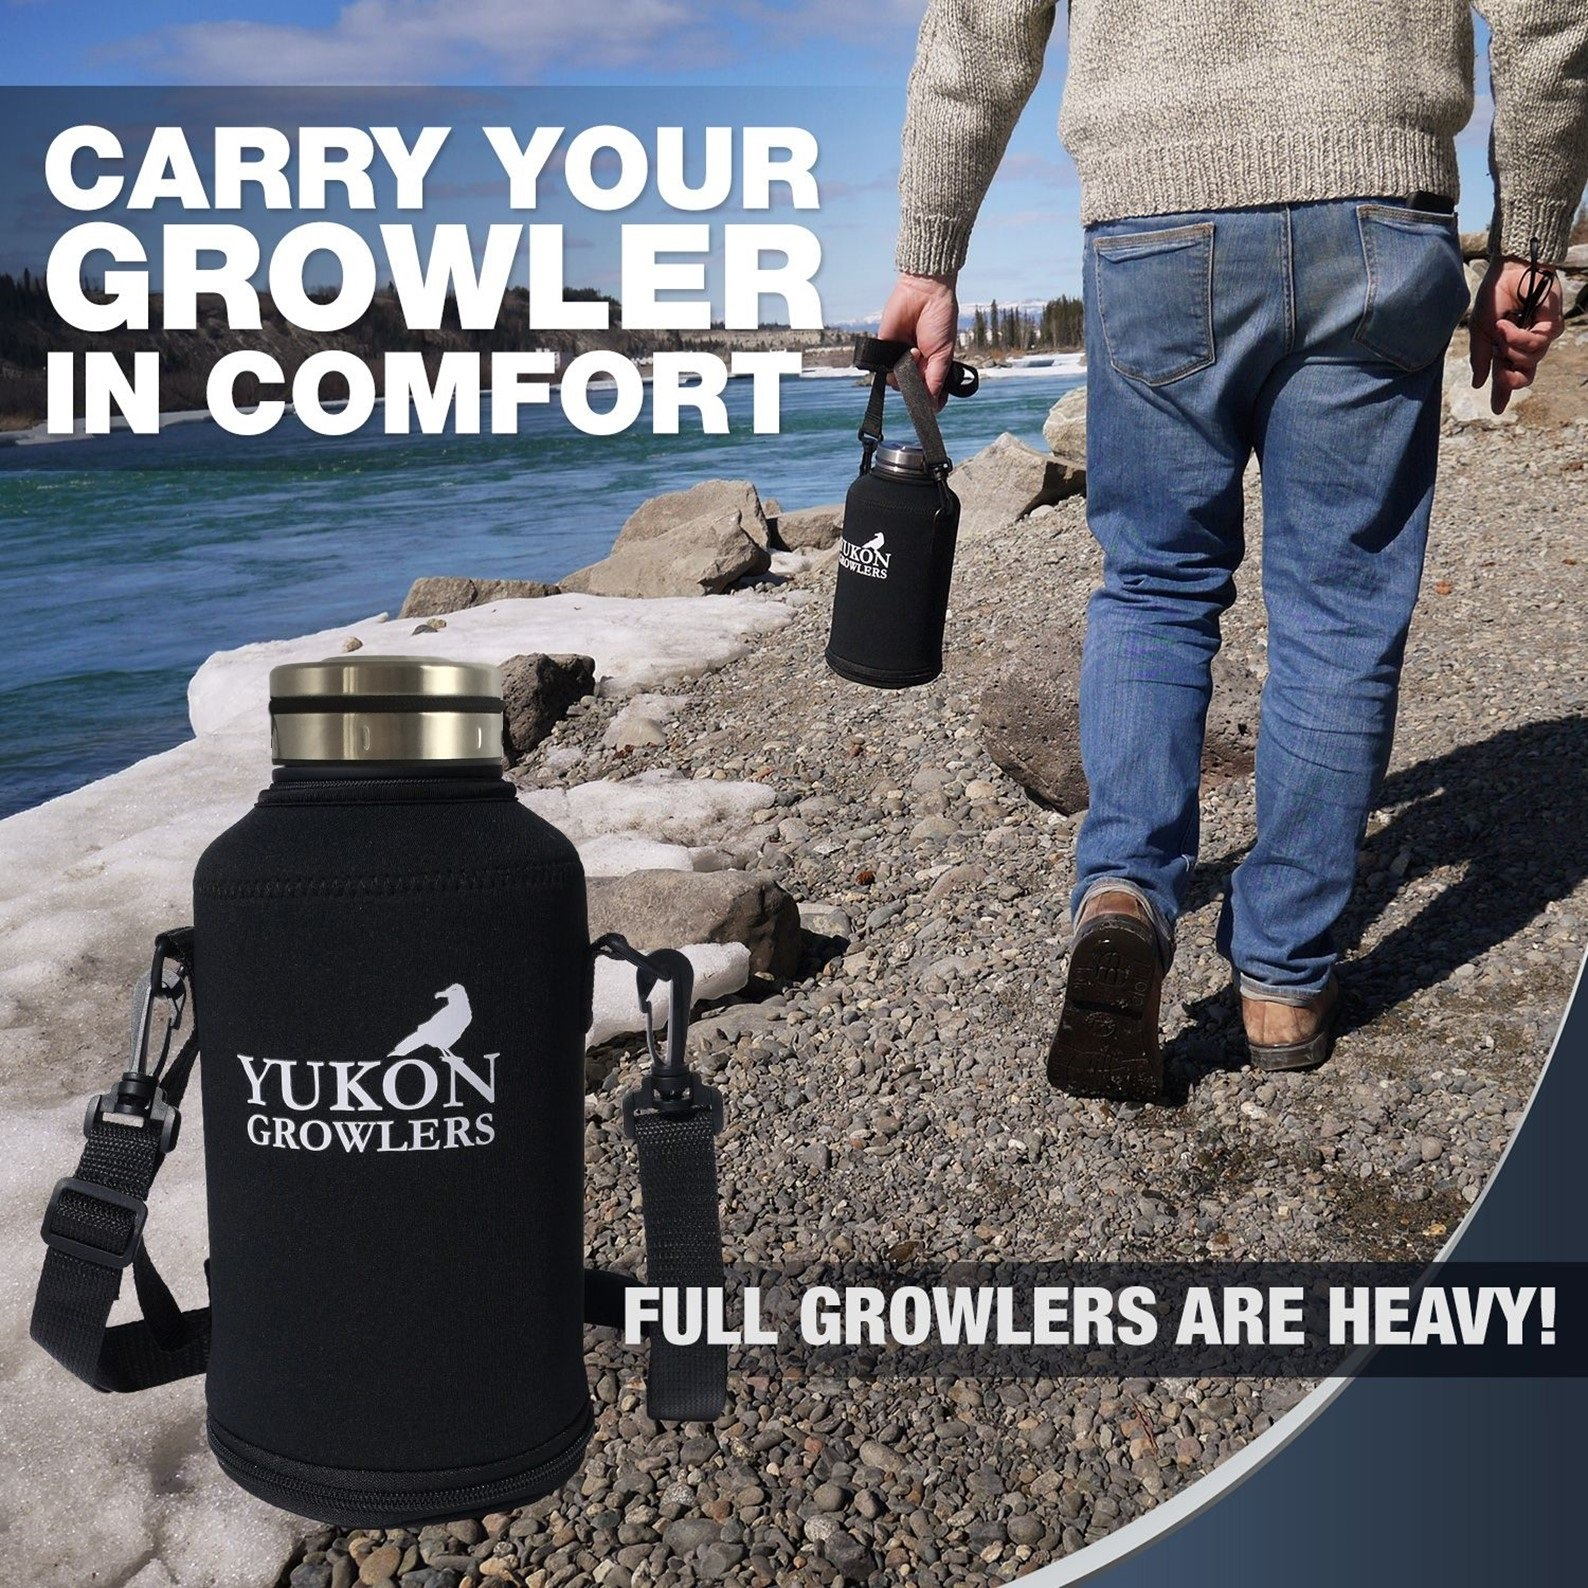 Yukon Growlers Insulated Beer Growler - Keep Your Beer Cold and Carbonated for 24 Hours - Stainless Steel Vacuum Water Bottle with Carrying Case Also Keeps Coffee Hot - Improved Lid - 64 oz by Yukon Growlers (Image #5)